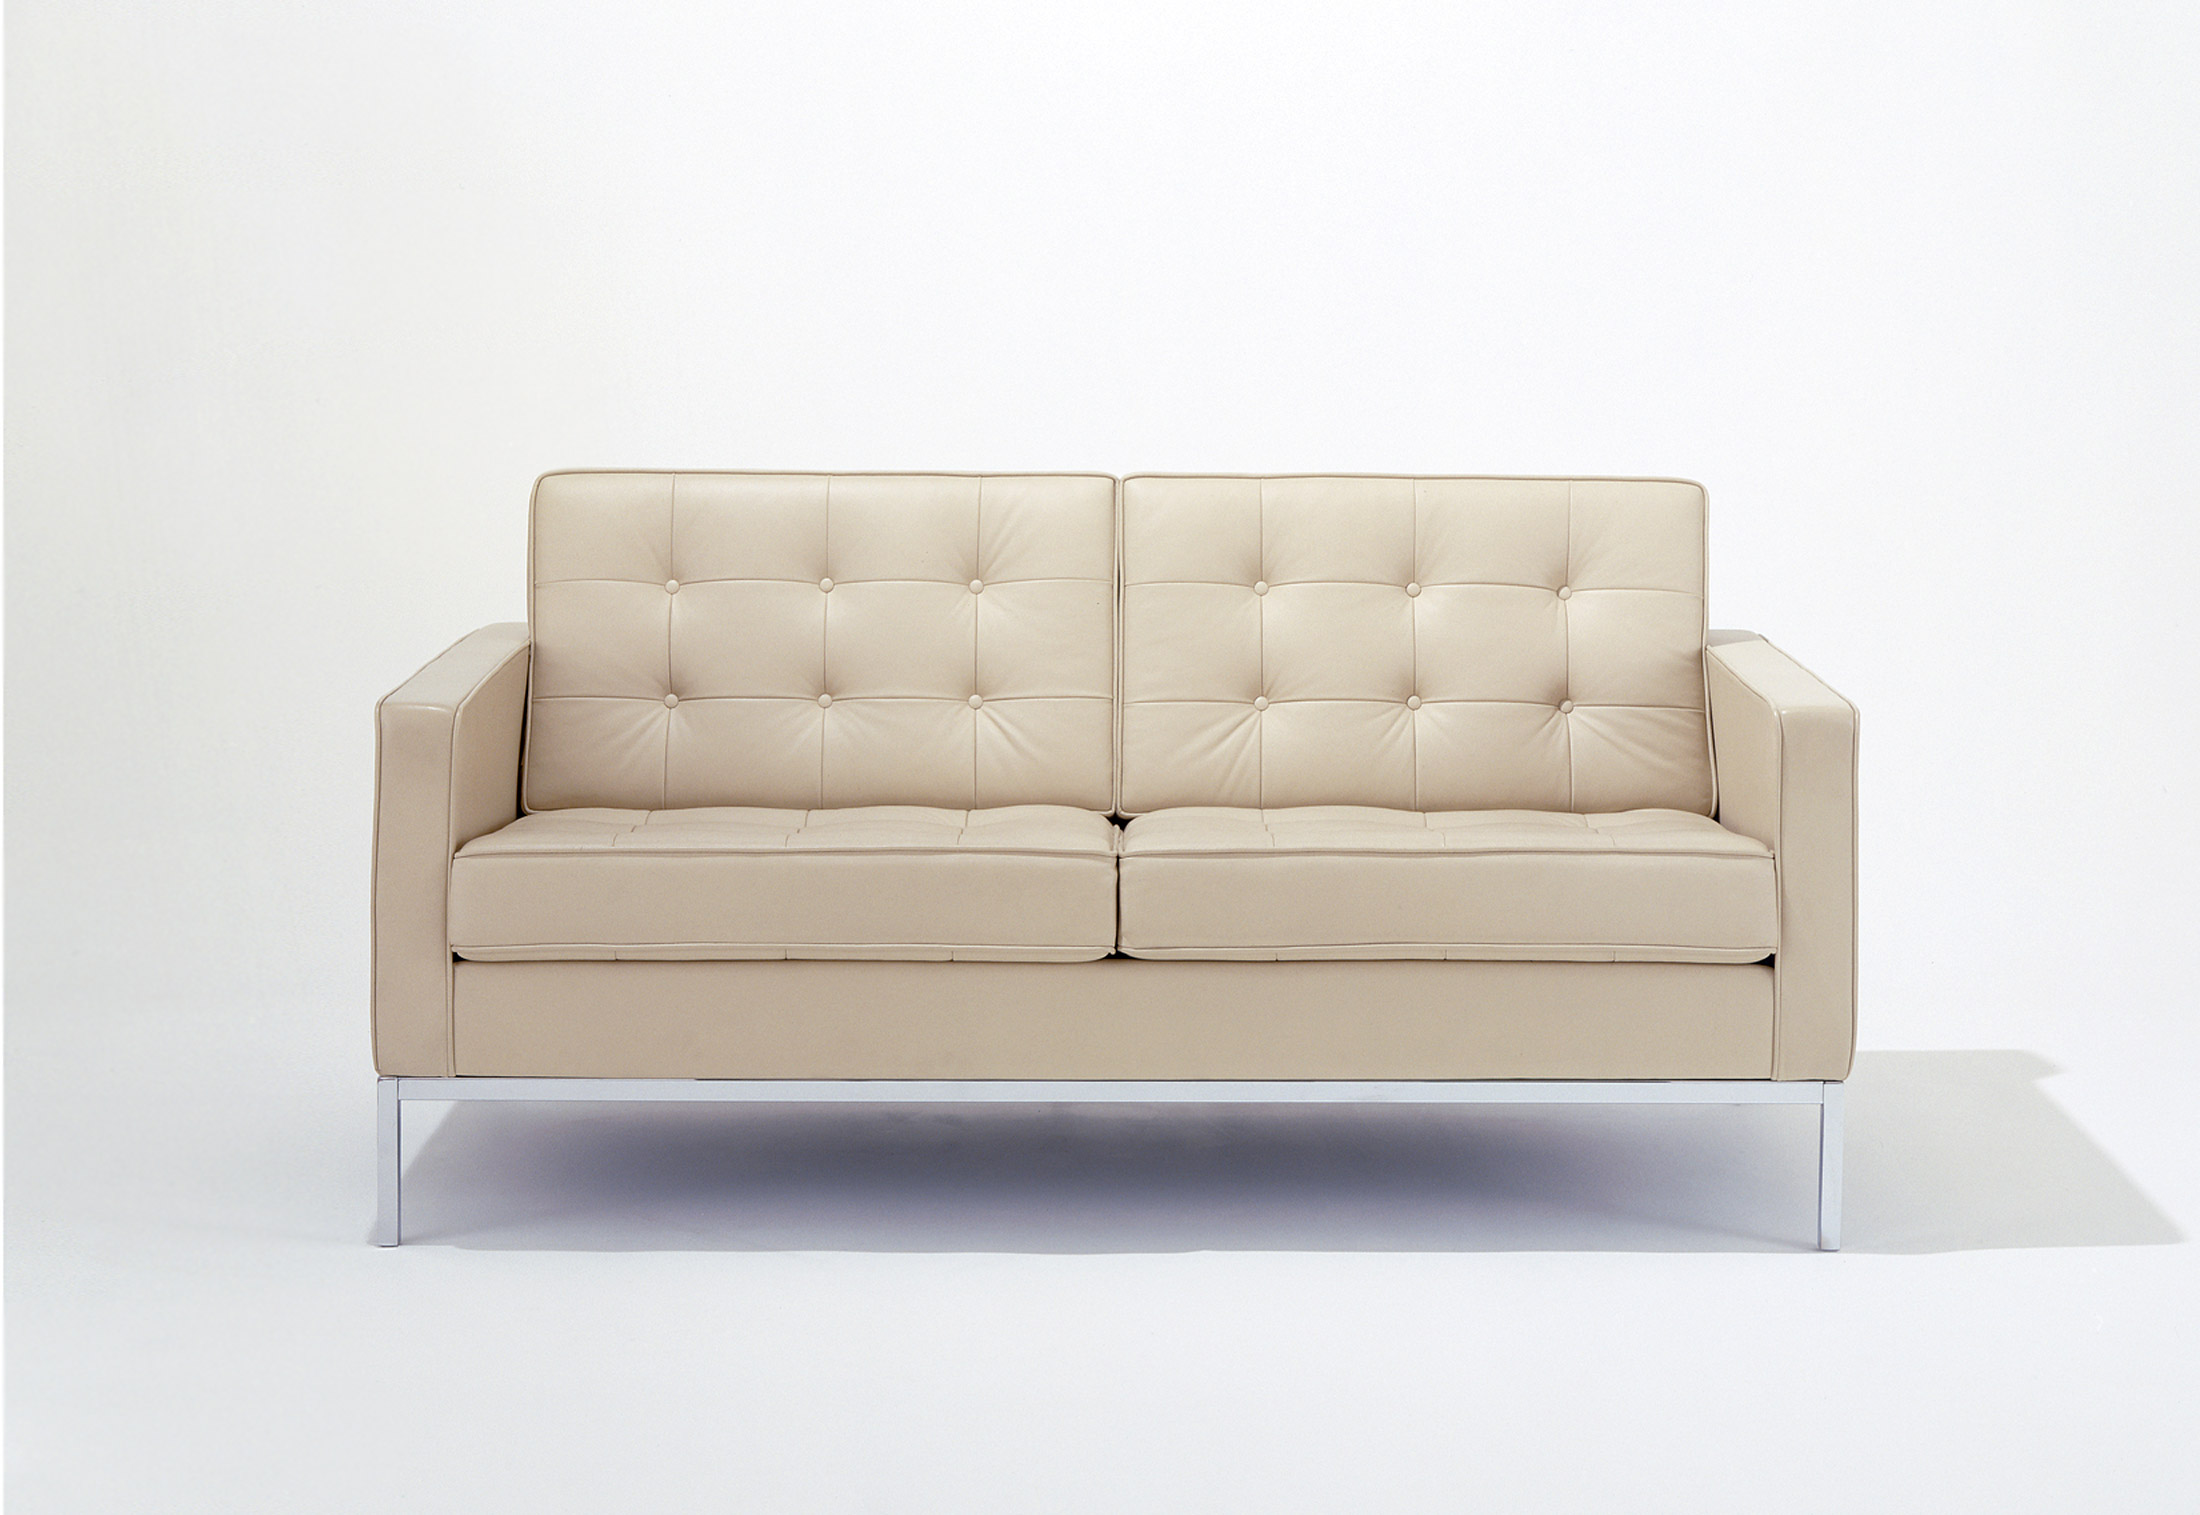 Florence Knoll Sessel Florence Knoll Sofa Von Knoll Stylepark